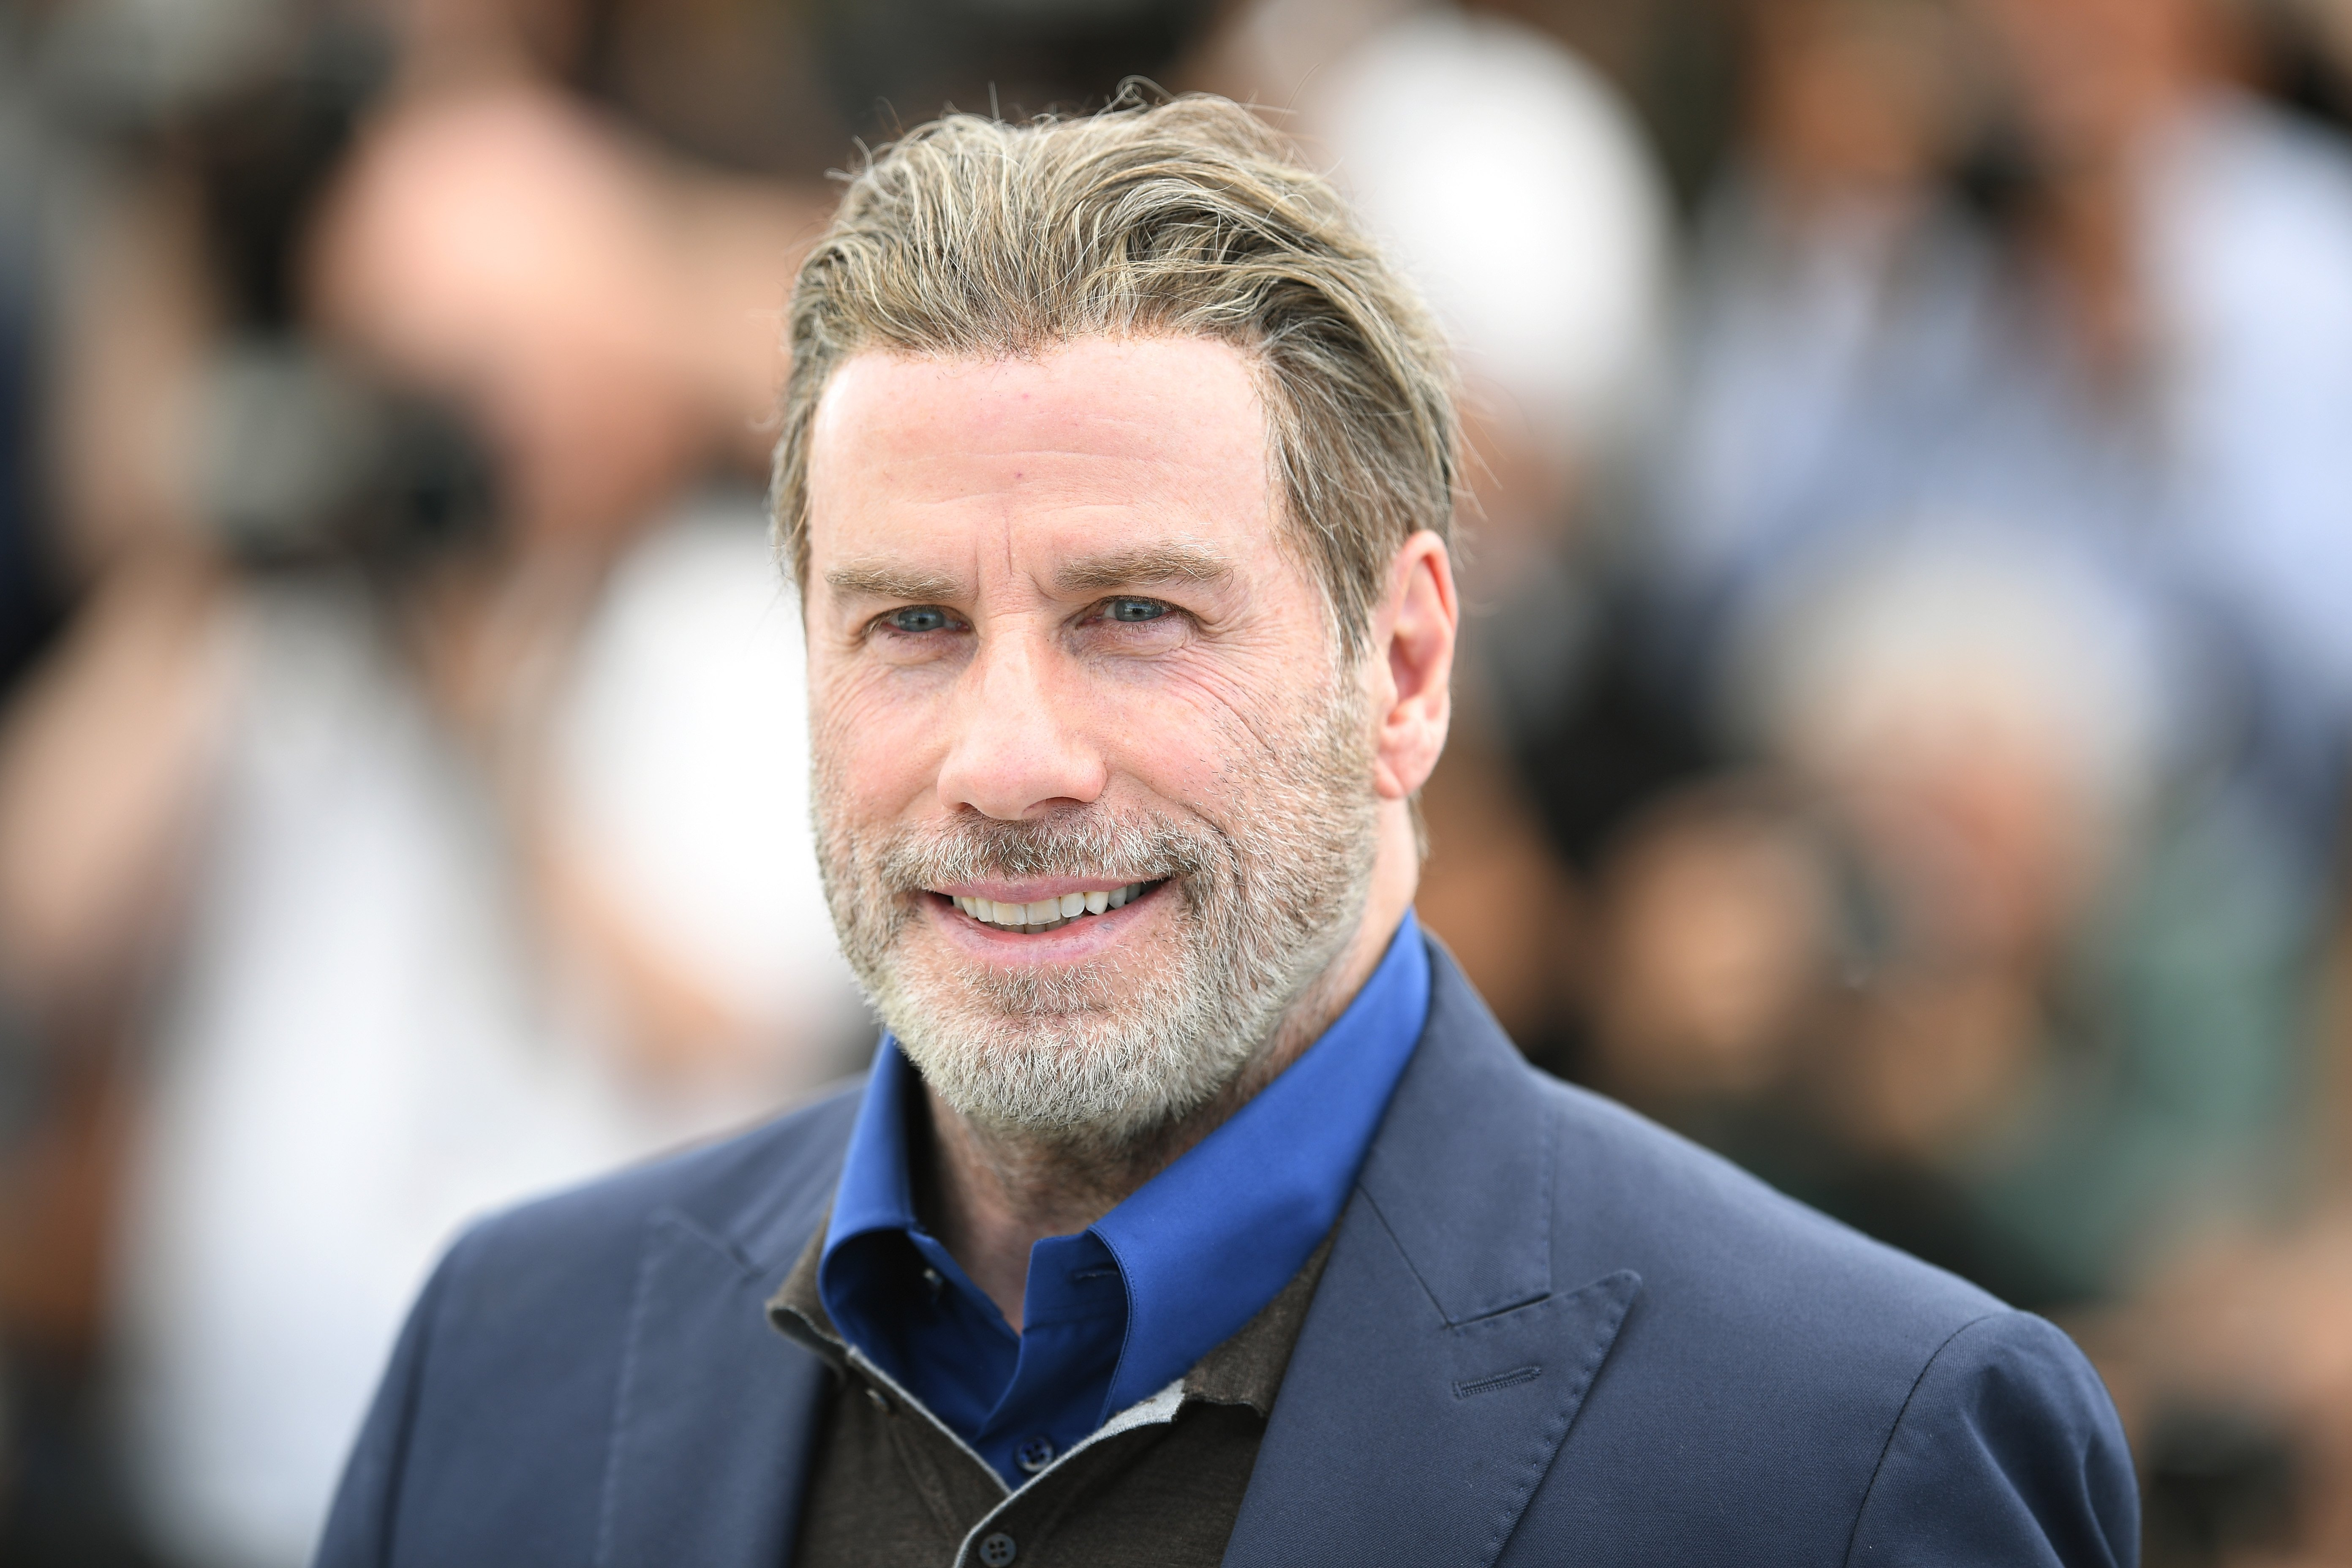 John Travolta lors du 71e Festival de Cannes, 15 mai 2018.  | Photo : GettyImages